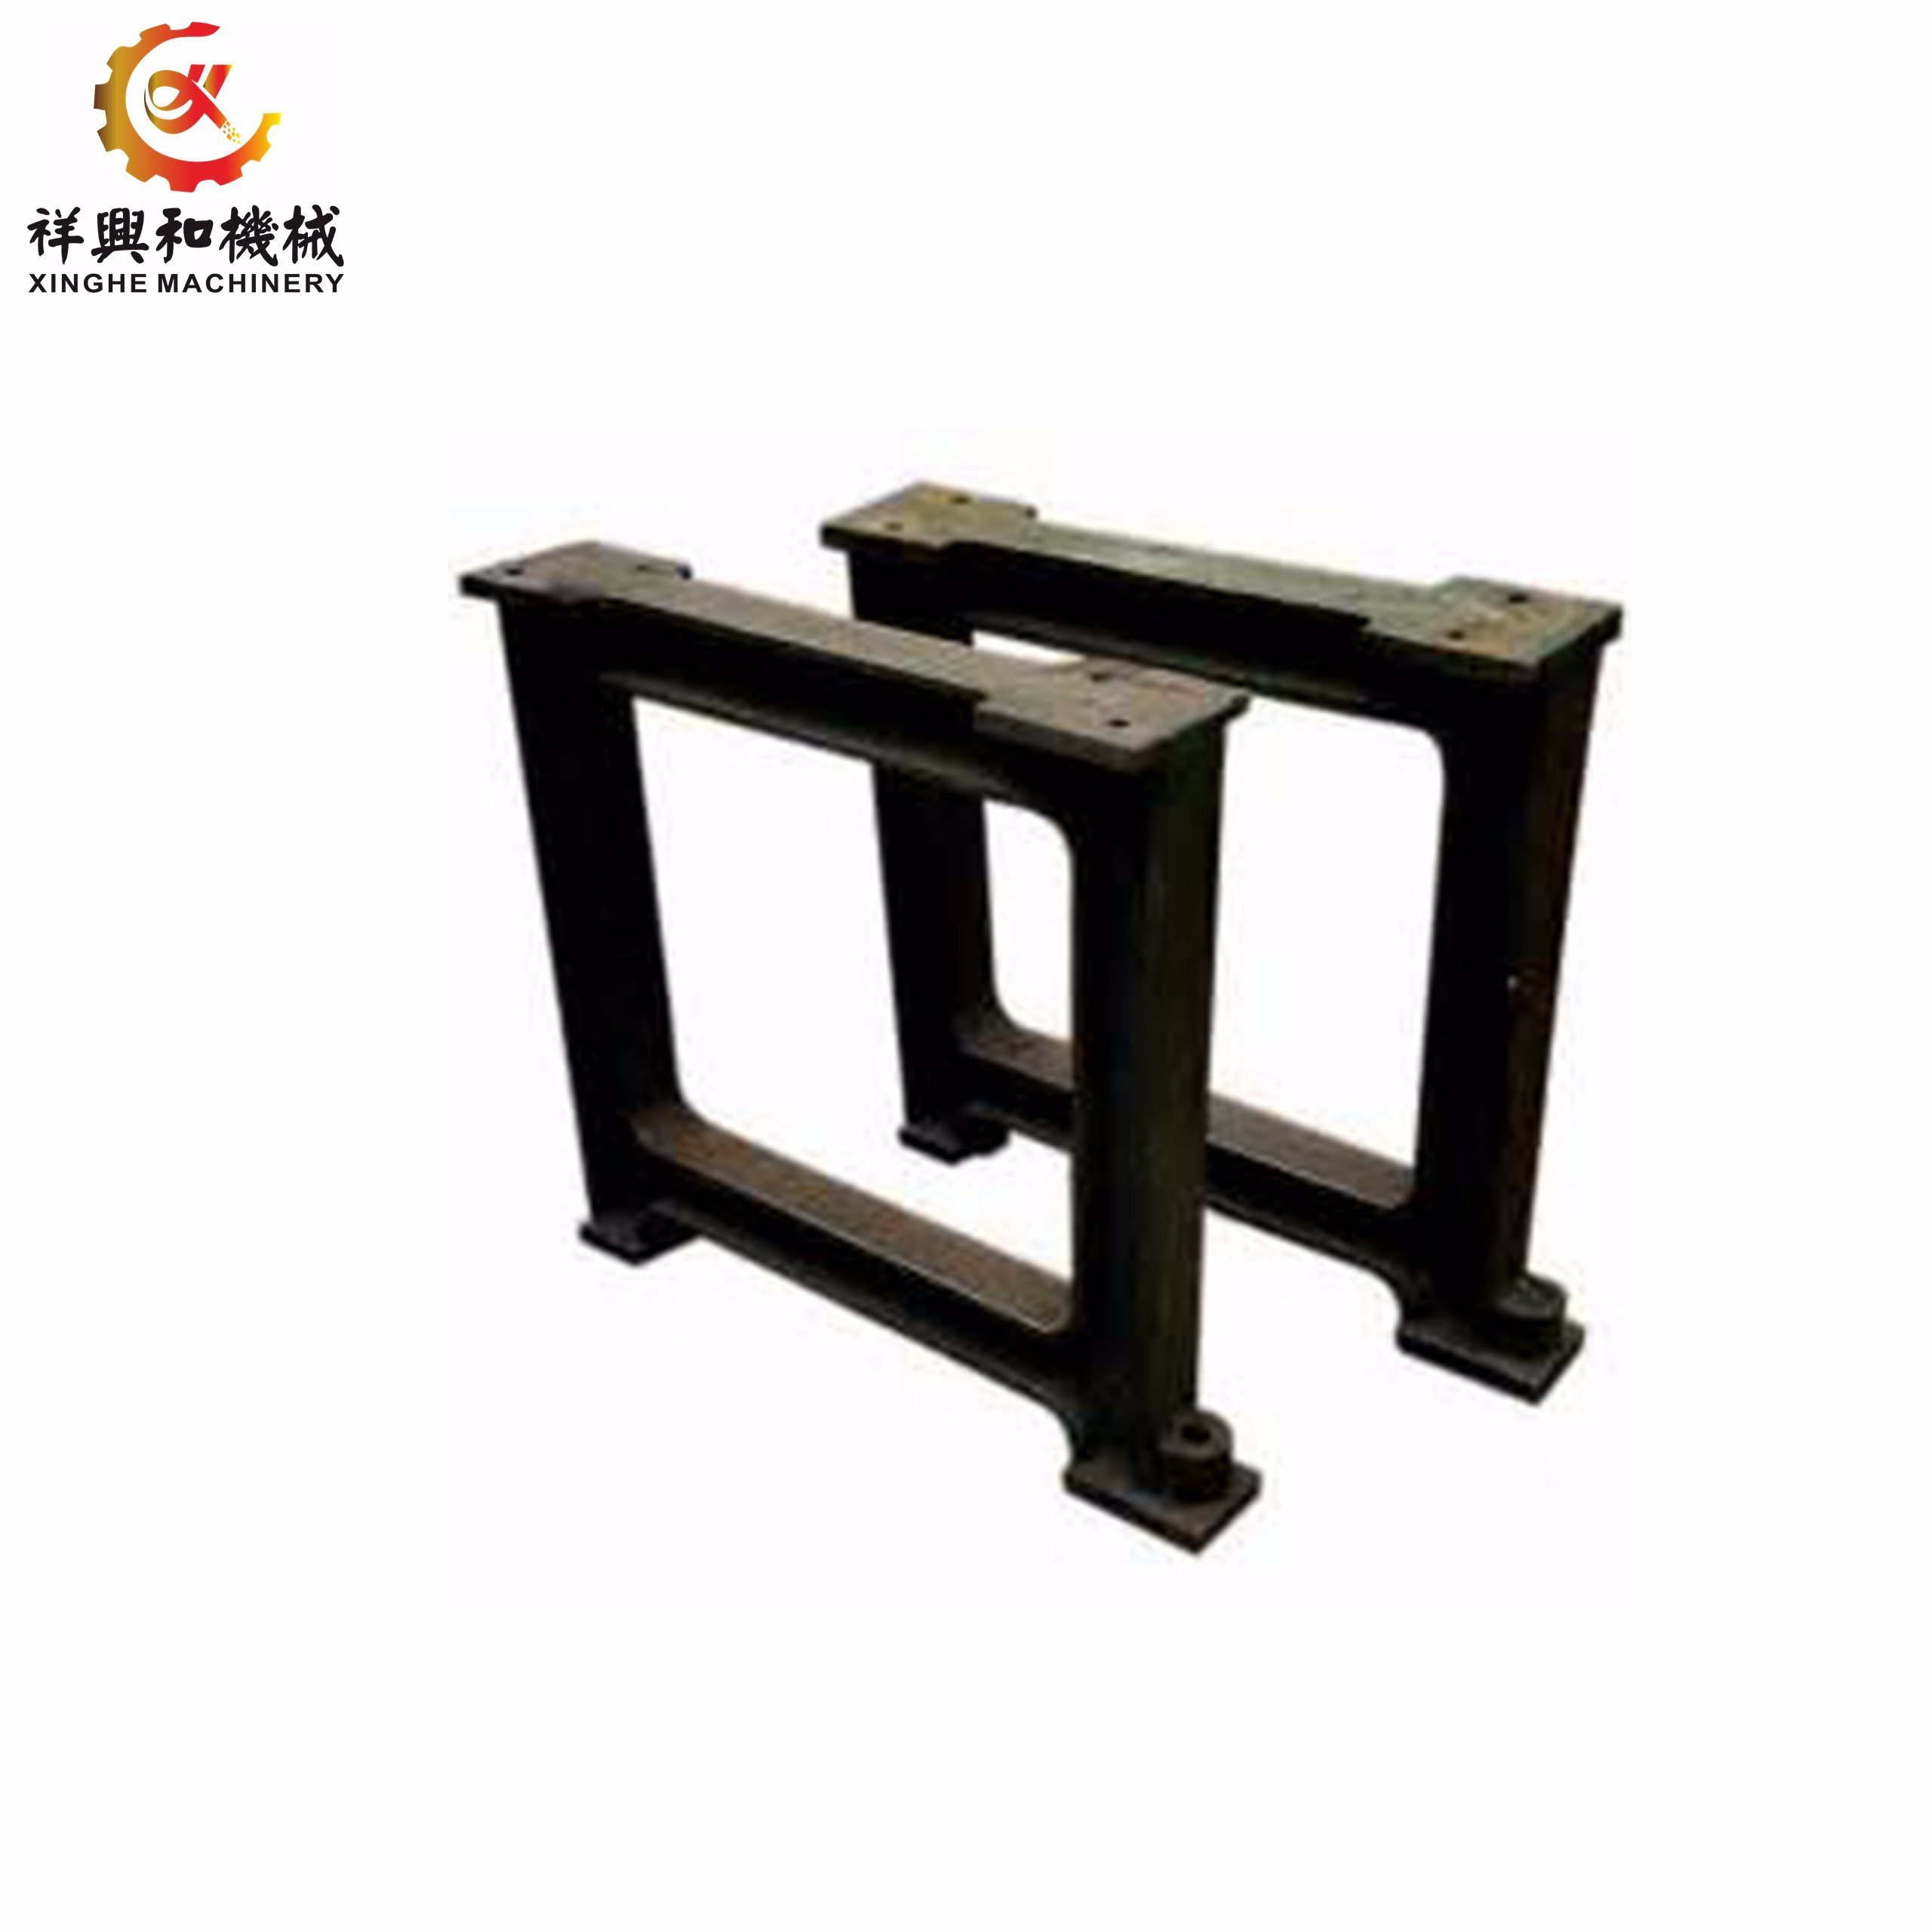 China oem sand casting table legs cast iron leg bench leg photos oem sand casting table legs cast iron leg bench leg watchthetrailerfo